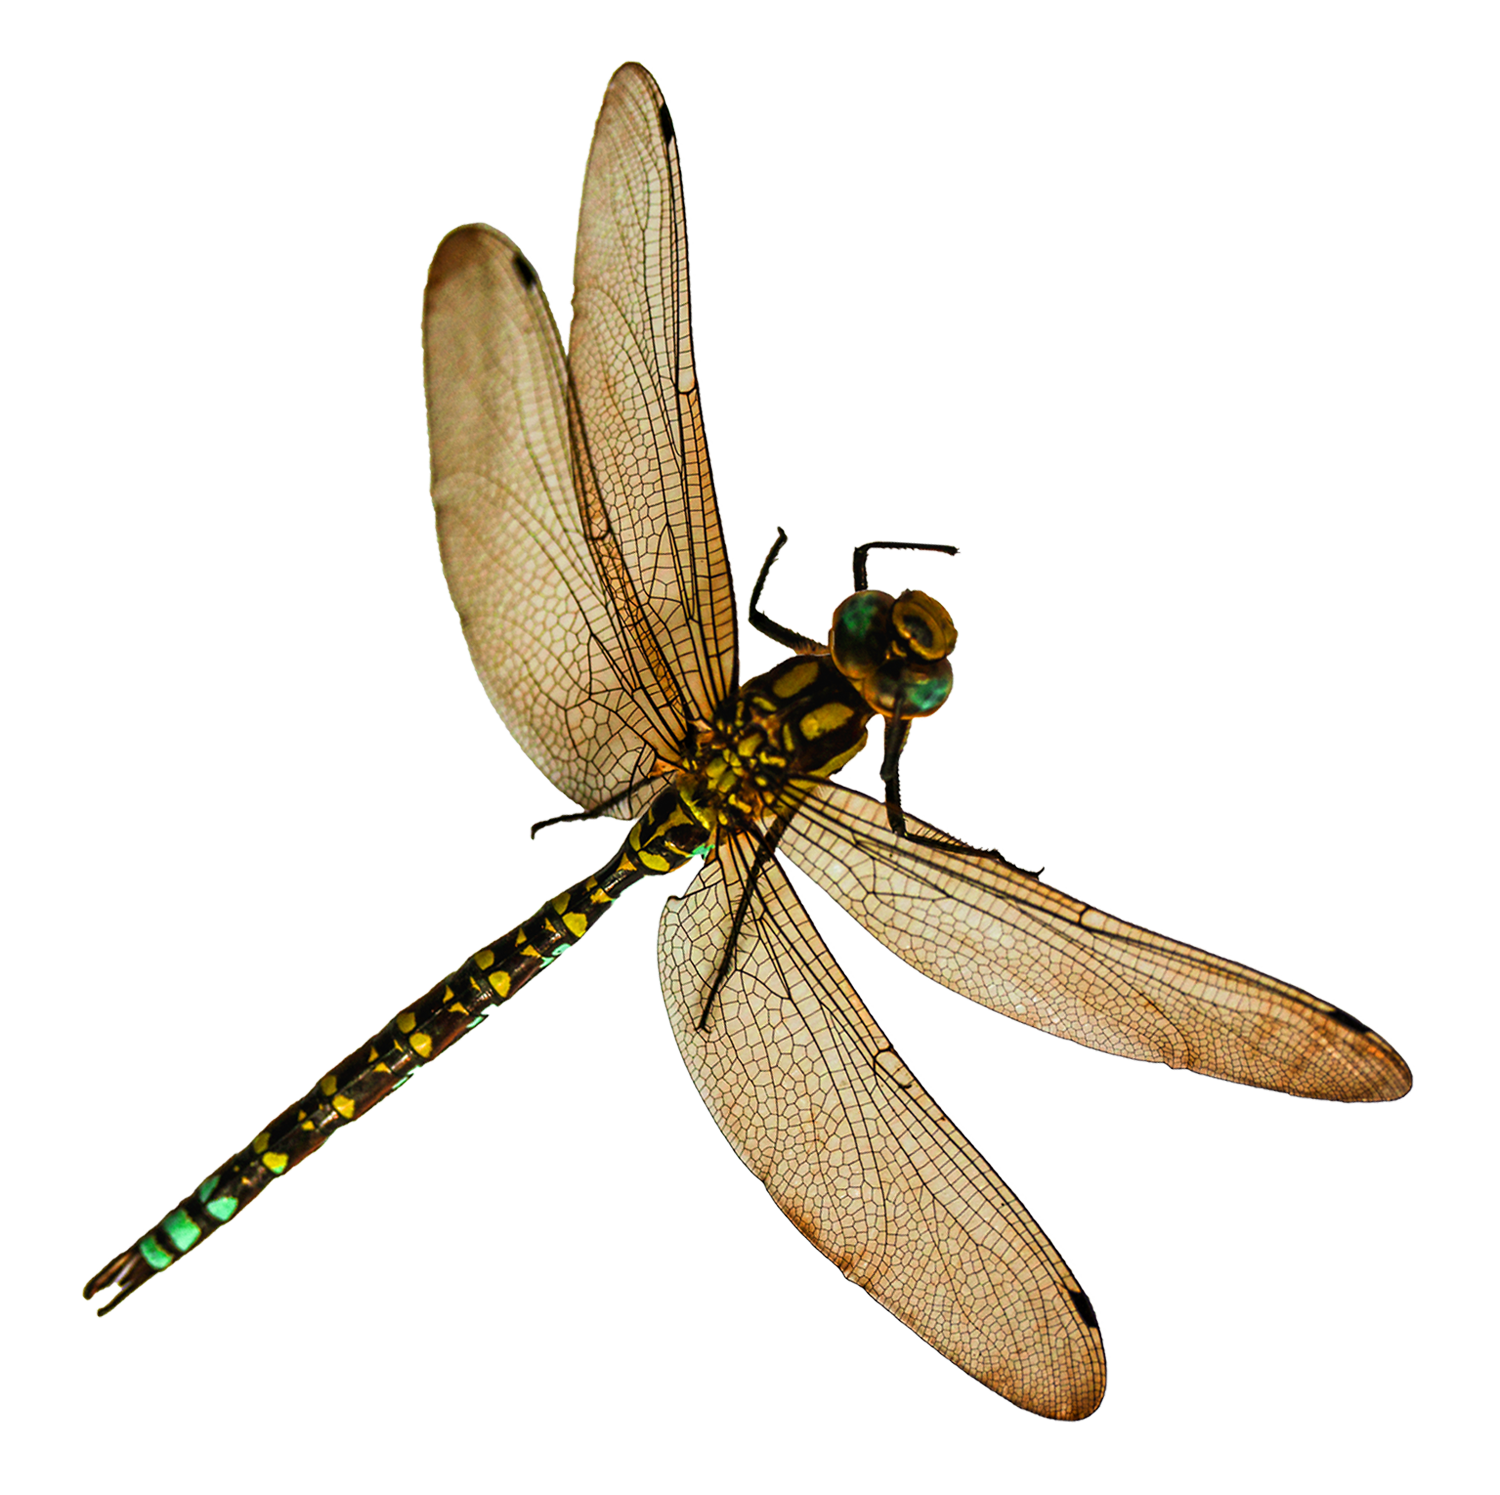 Dragonfly transparent insect. Png image purepng free